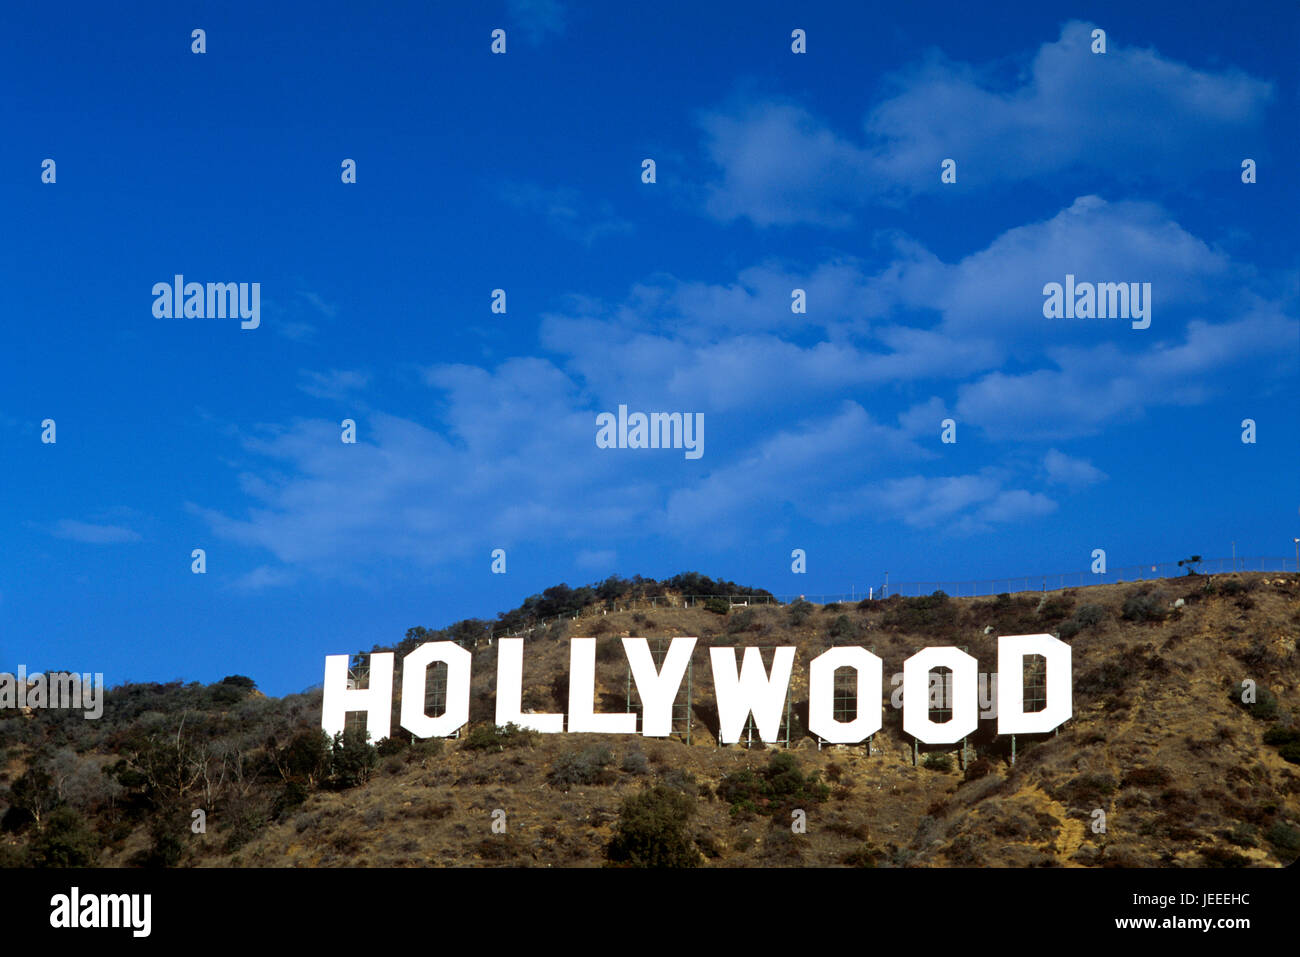 Hollywood Sign Los Angeles Ca Stock Photos Hollywood Sign Los